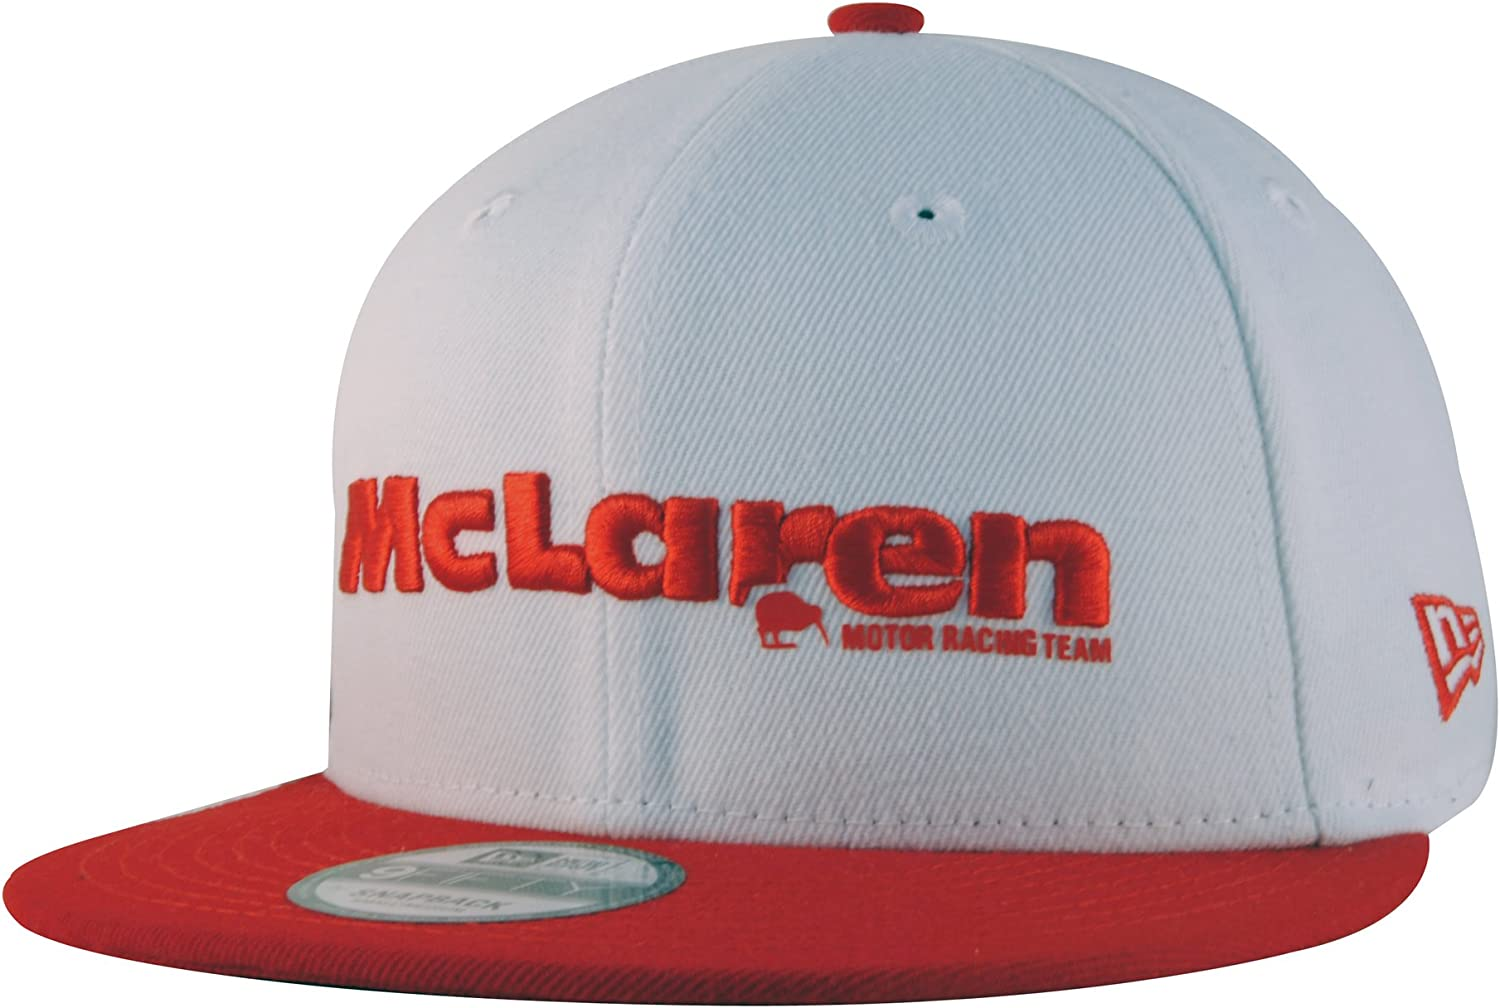 New Era 9Fifty F1 McLaren Honda Established 1963 Kiwi Blanco ...